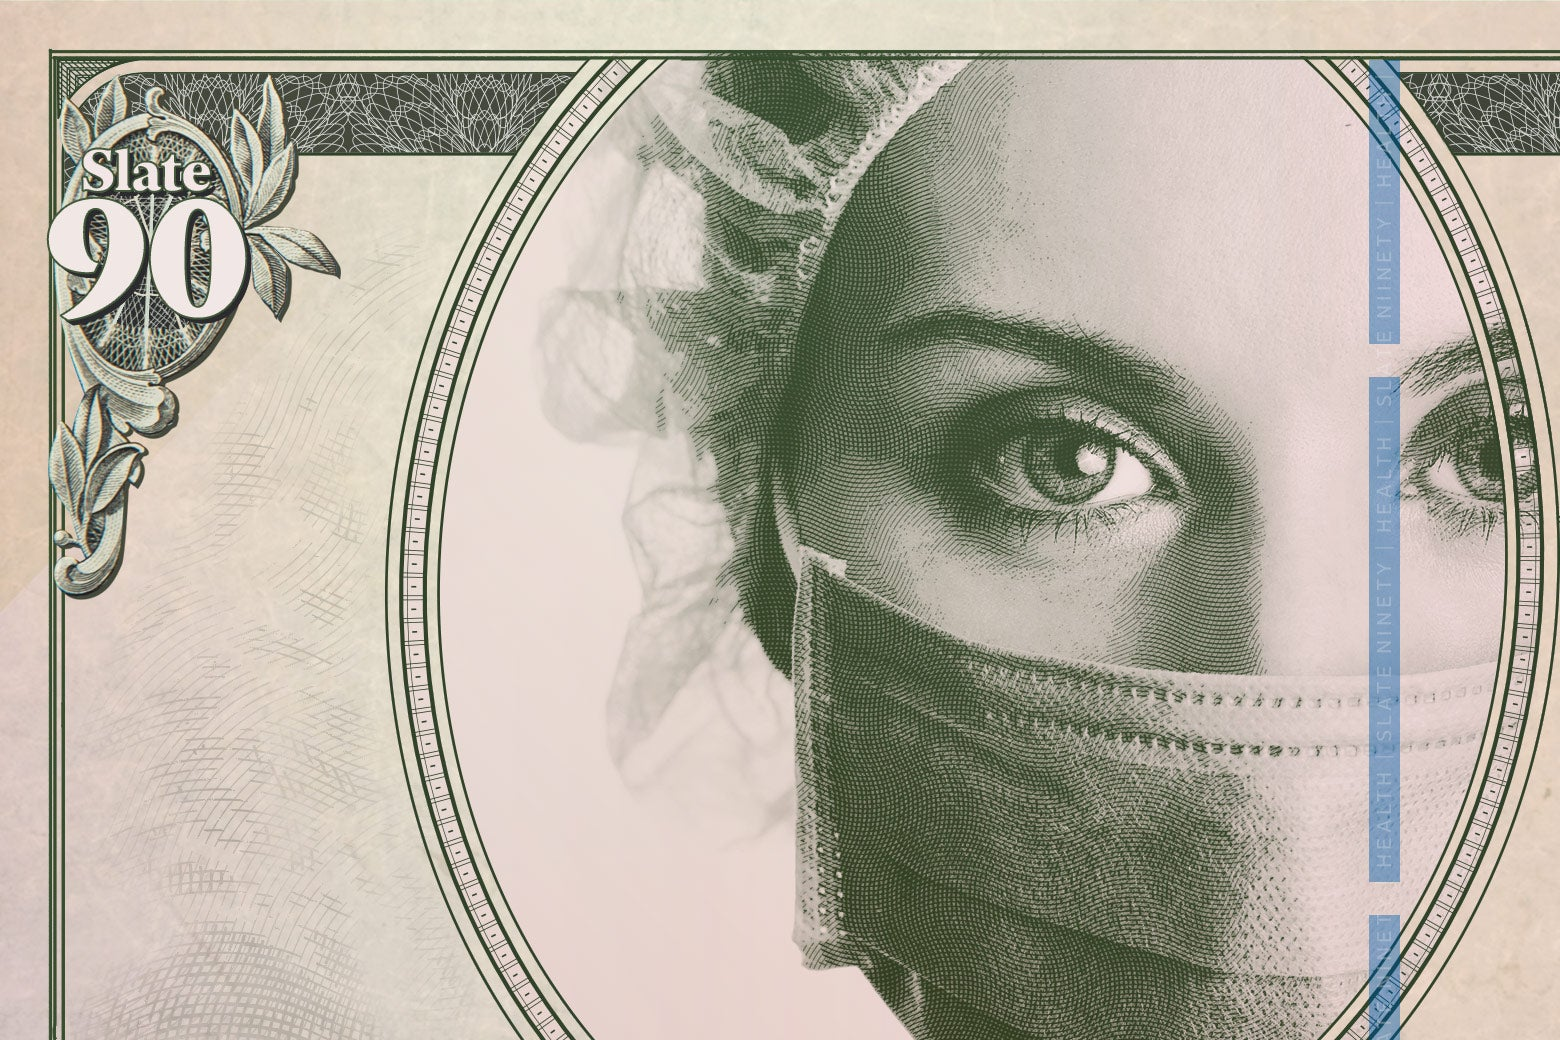 Photo illustration: a Slate 90 modified bill with an image of a surgically masked woman in the center.